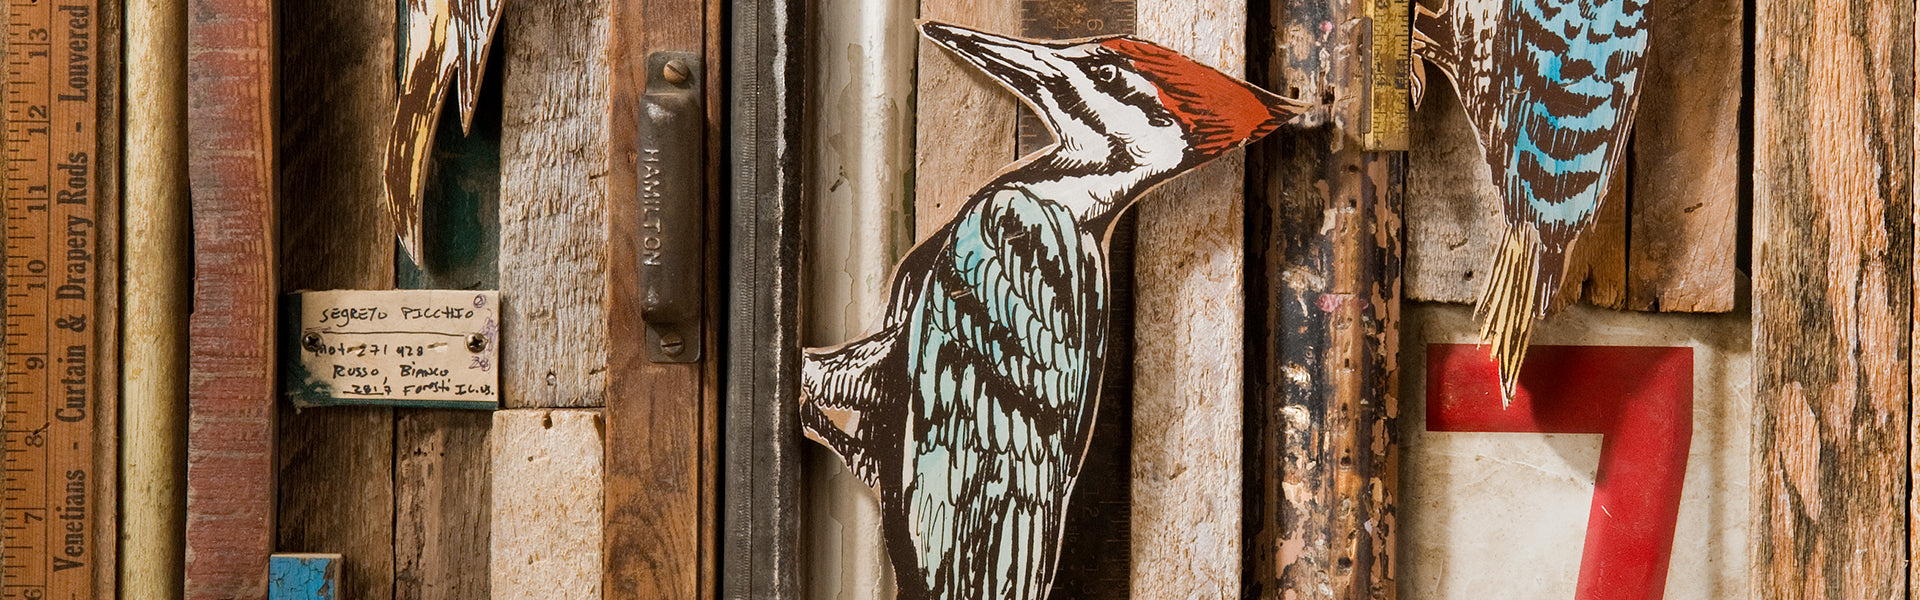 Dolan Geiman Woodpecker Found Object Assemblage